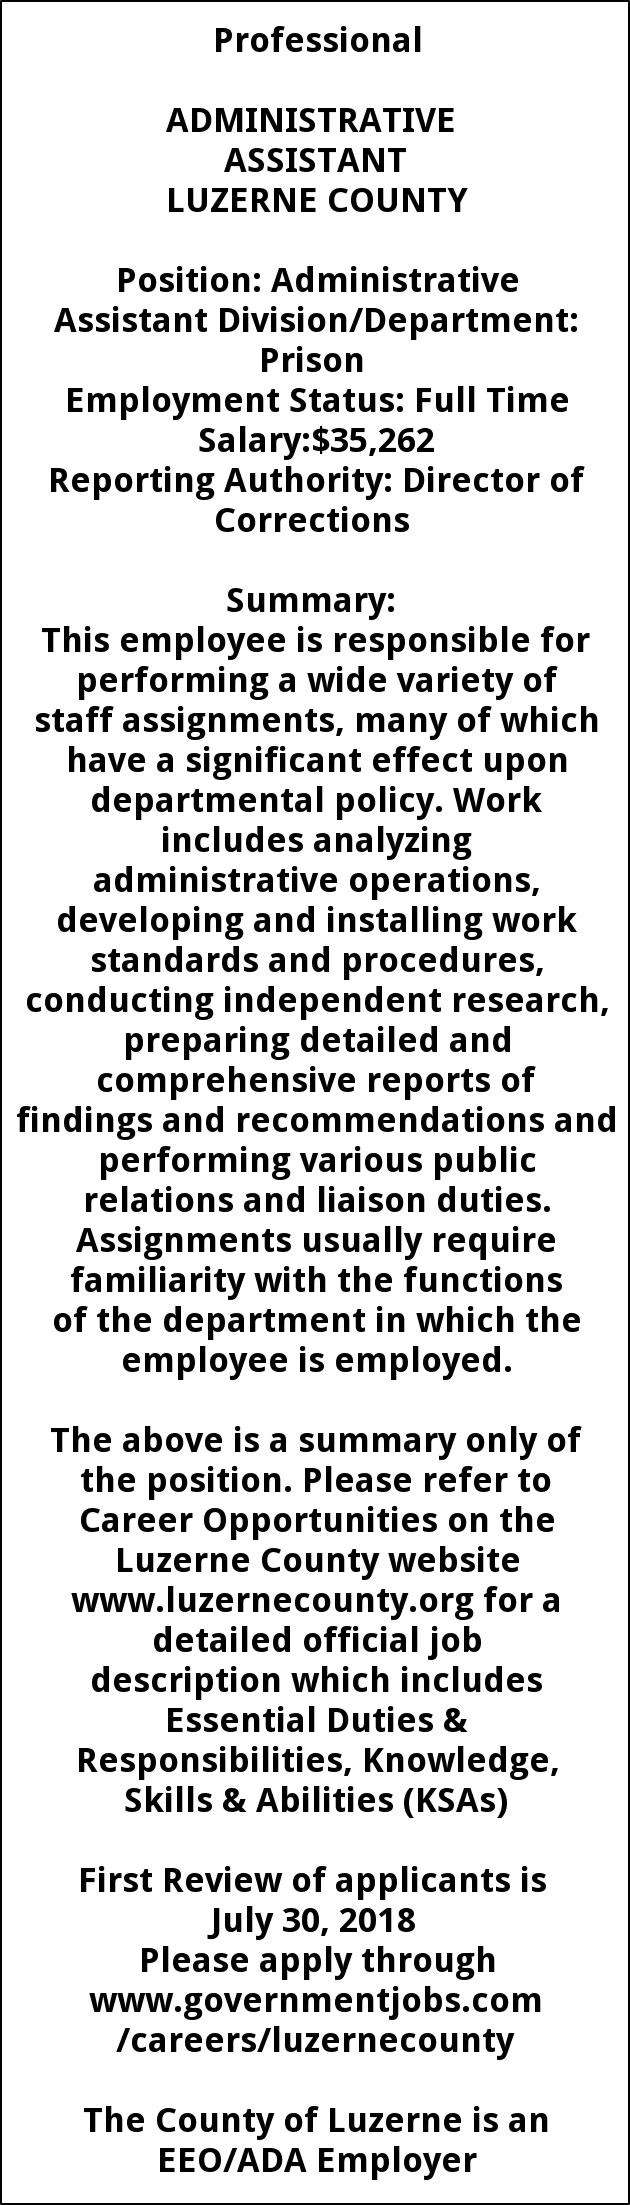 Administrative Assistant, Luzerne County